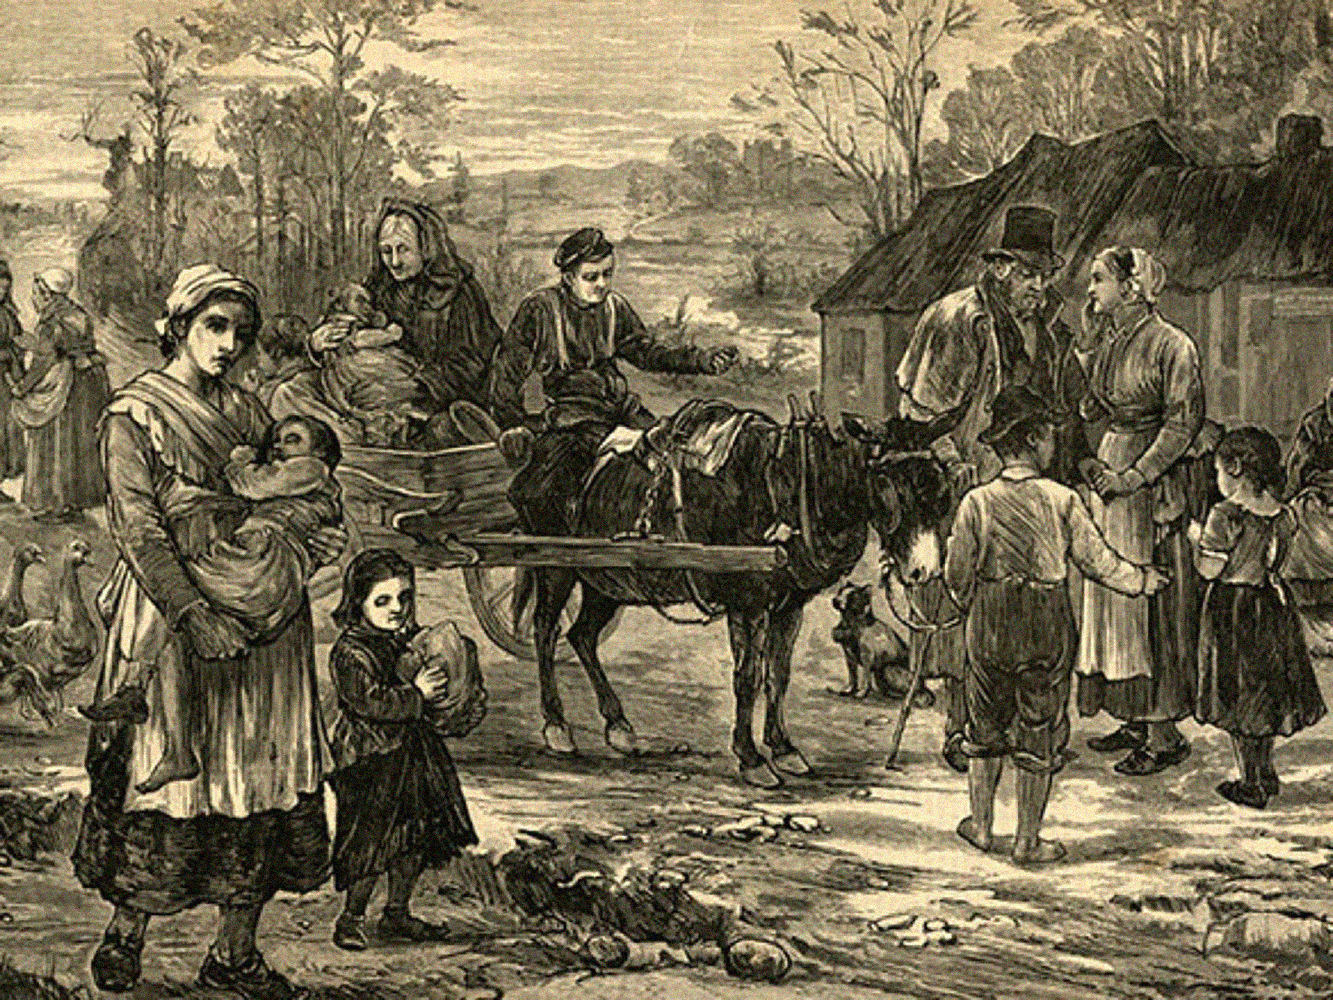 Image of an Irish eviction, 1871